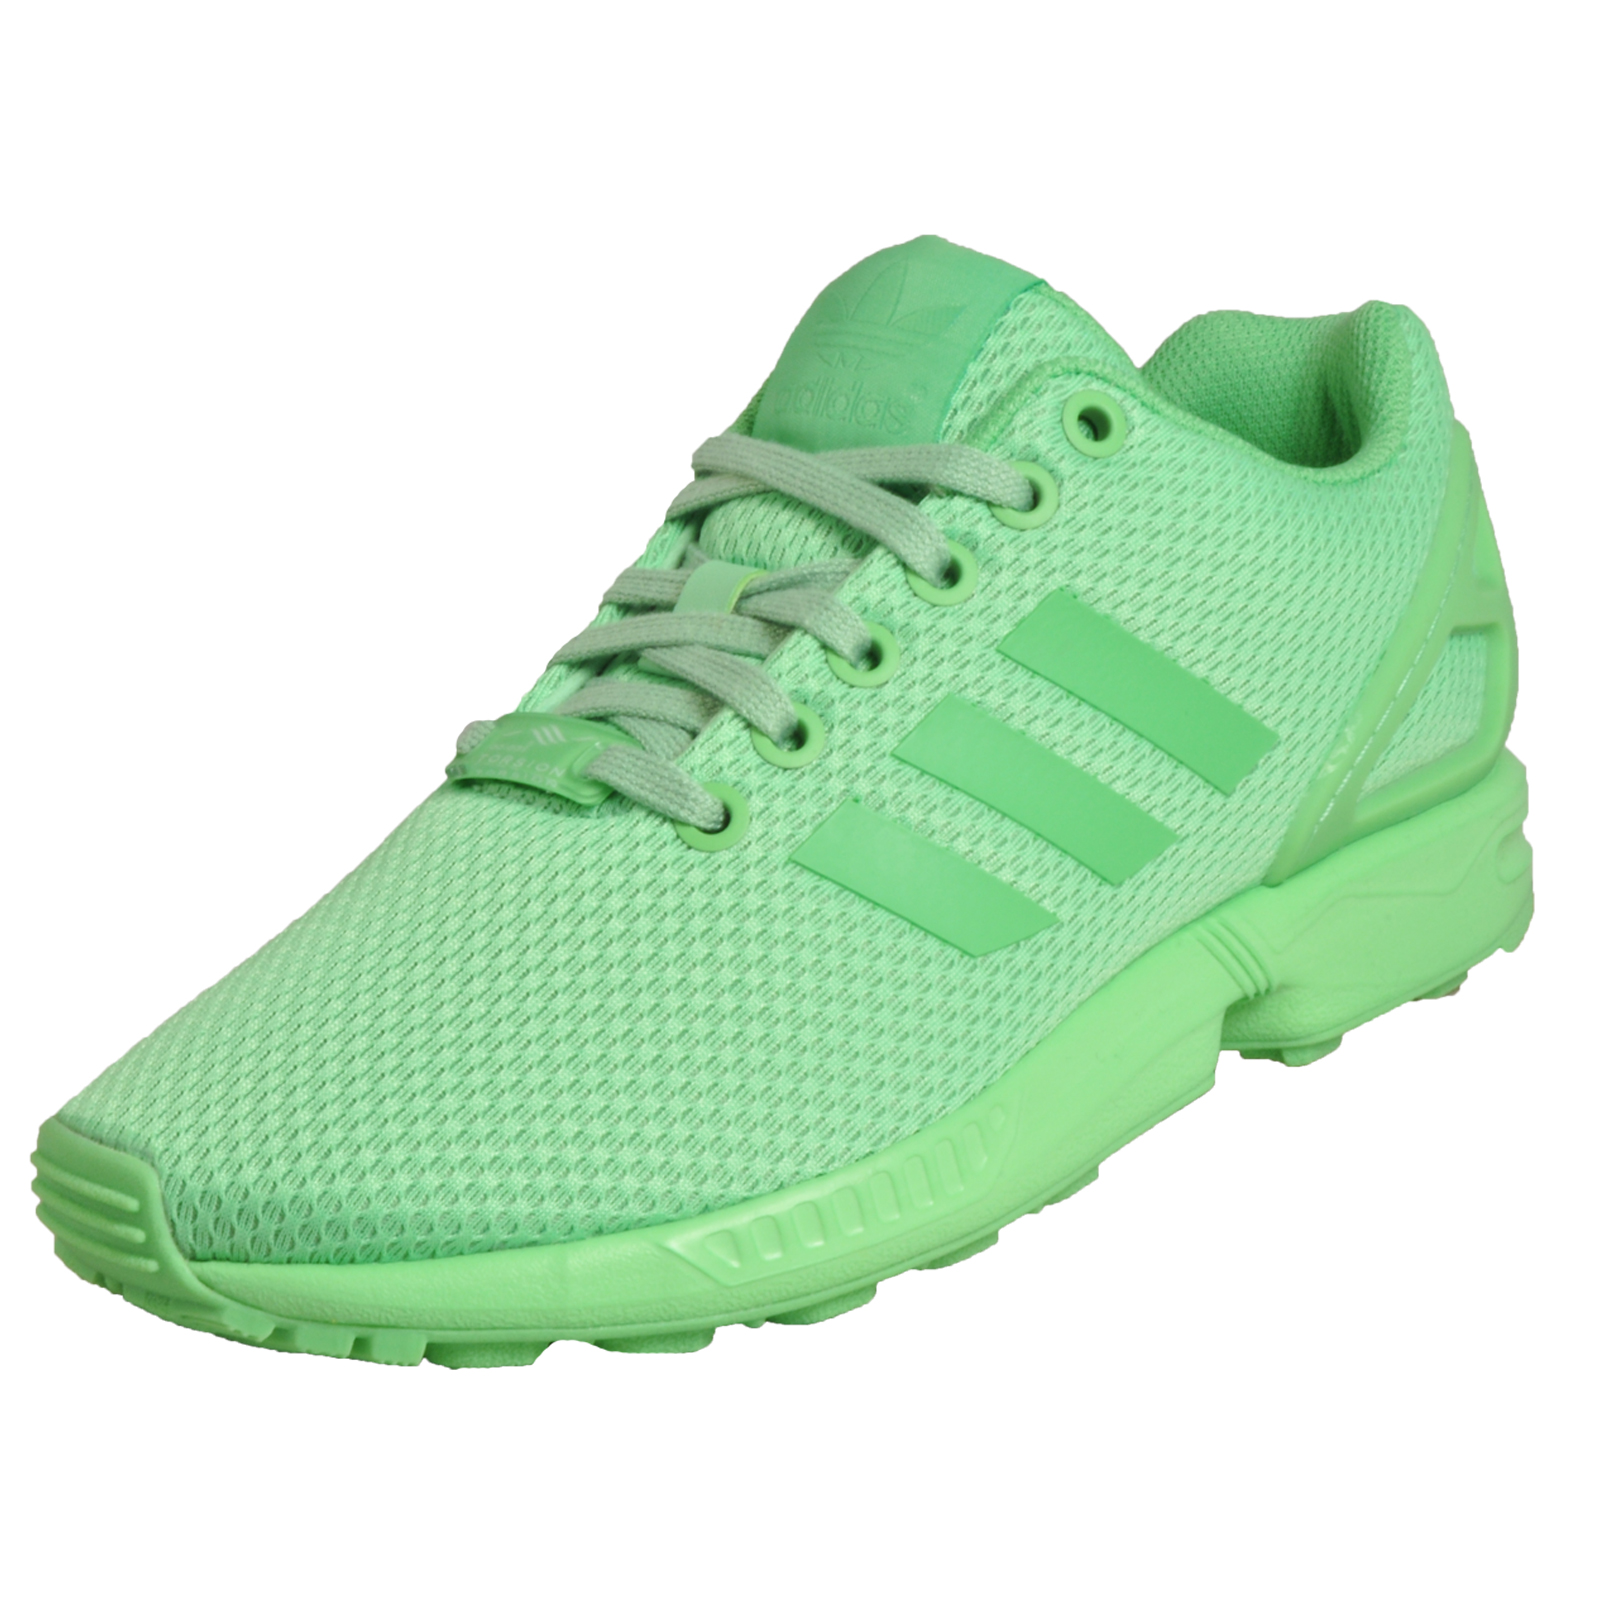 fa0424bbd9ba3 Details about Adidas Originals ZX Flux Women s Classic Casual Gym Fitness Trainers  Green